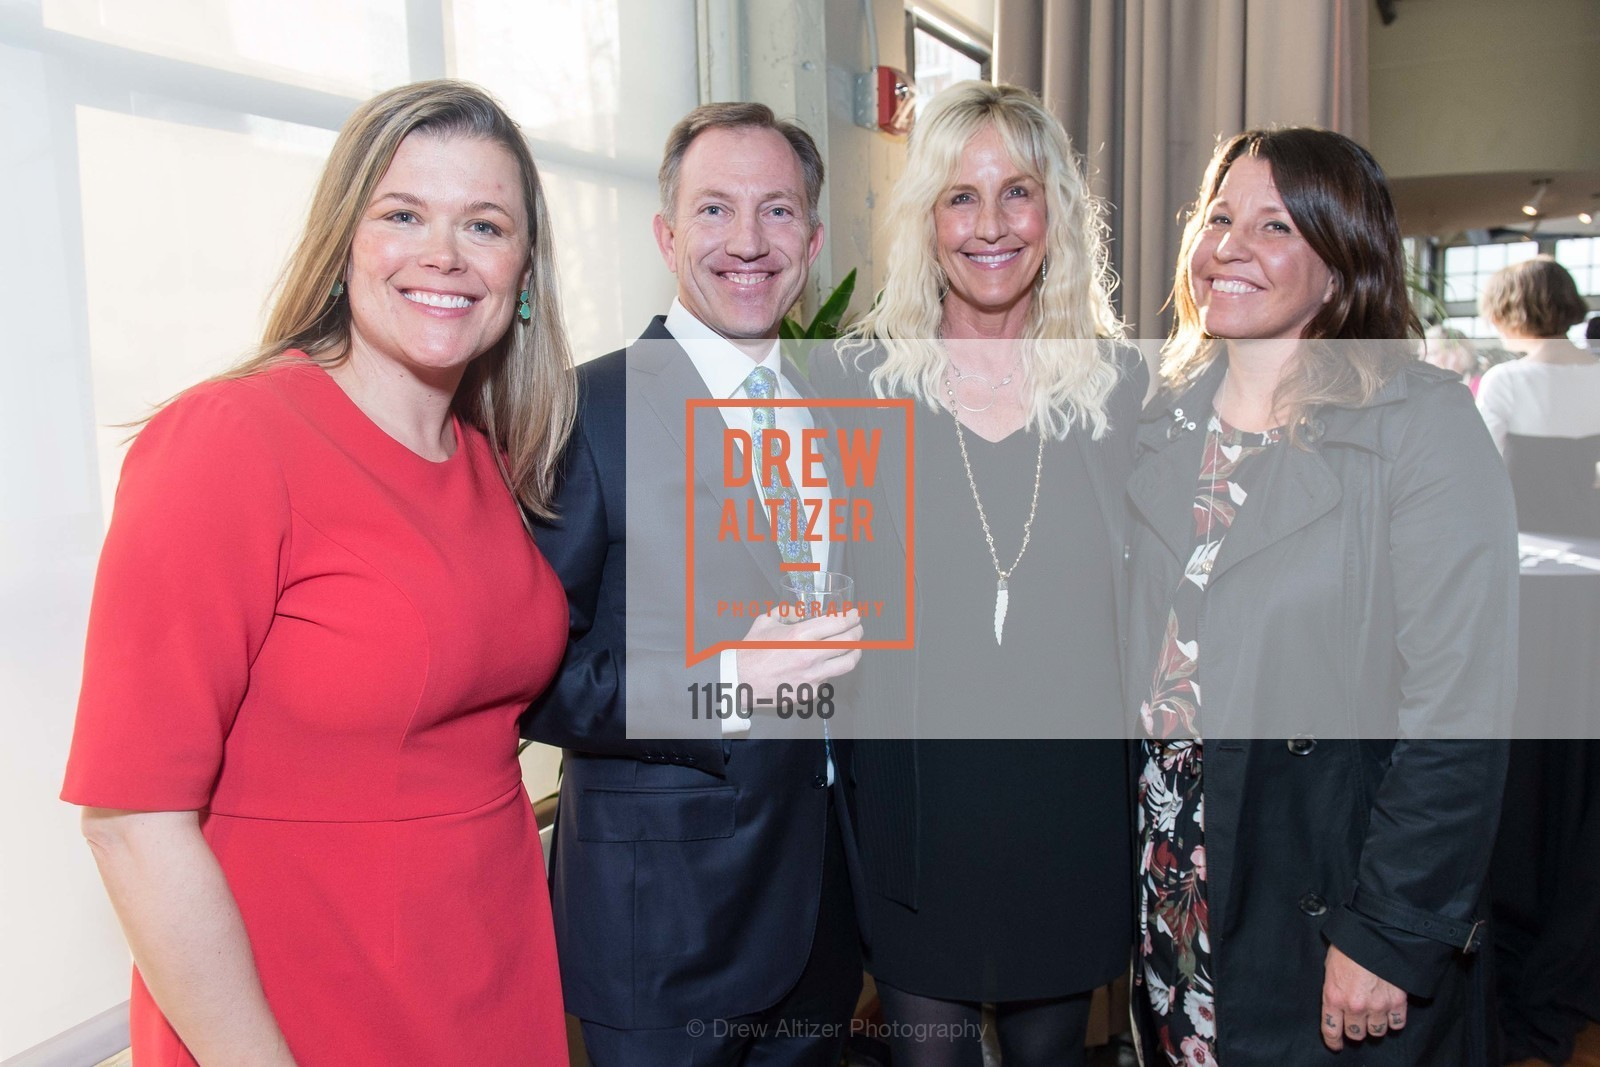 Heather White, Peter Sullivan, Erin Brockovich, Shaney Jo Darden, EWG's 6th Annual Earth Dinner, US, May 6th, 2015,Drew Altizer, Drew Altizer Photography, full-service agency, private events, San Francisco photographer, photographer california